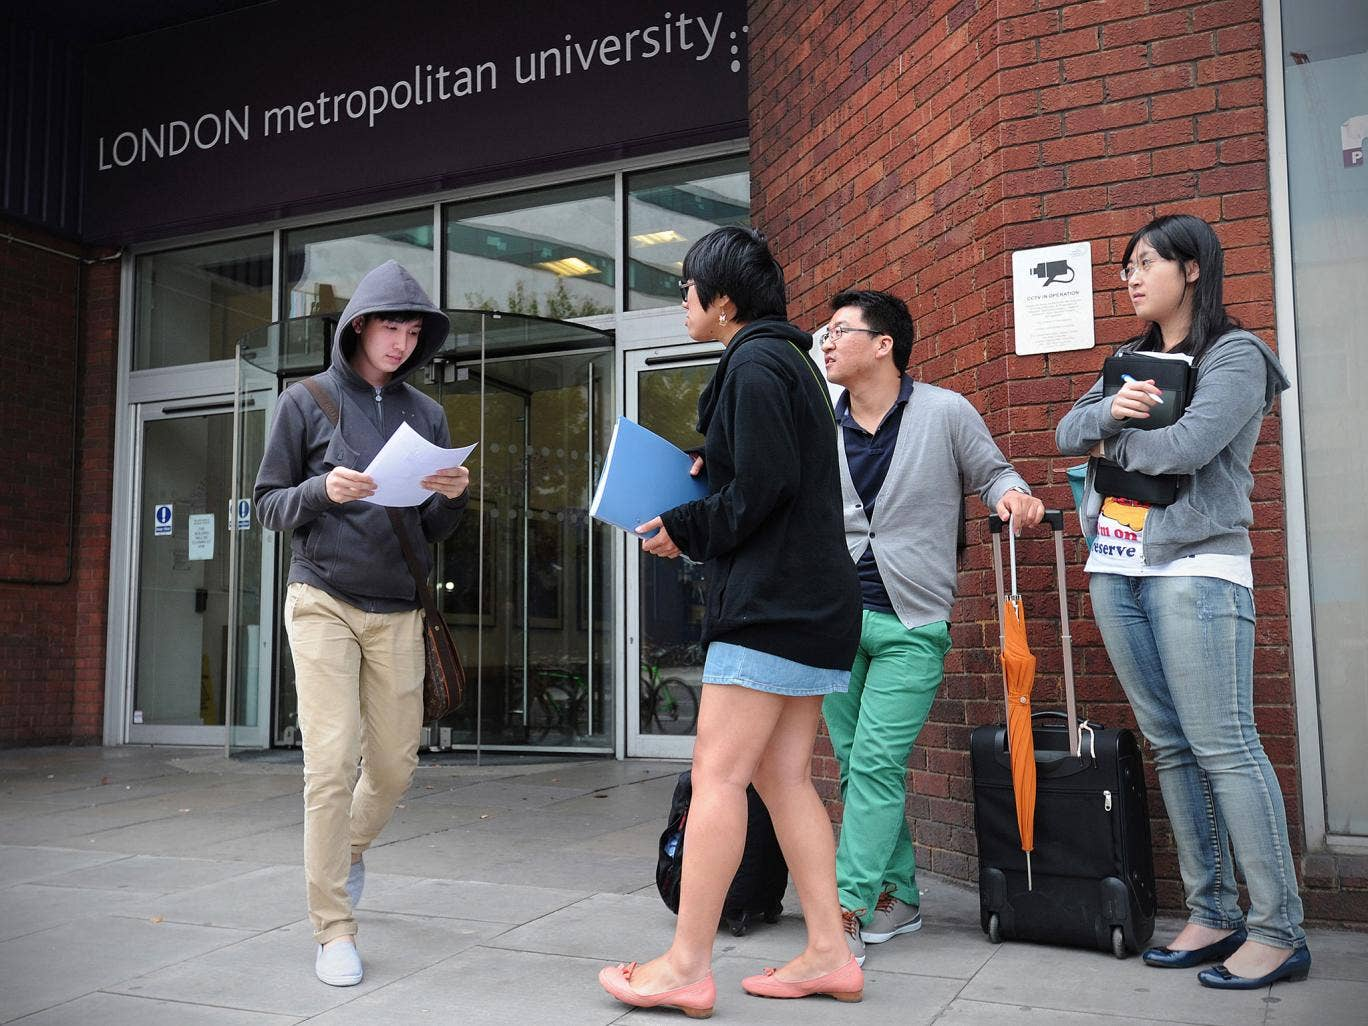 Hostile attitudes towards migration risk deterring students from studying in Britain